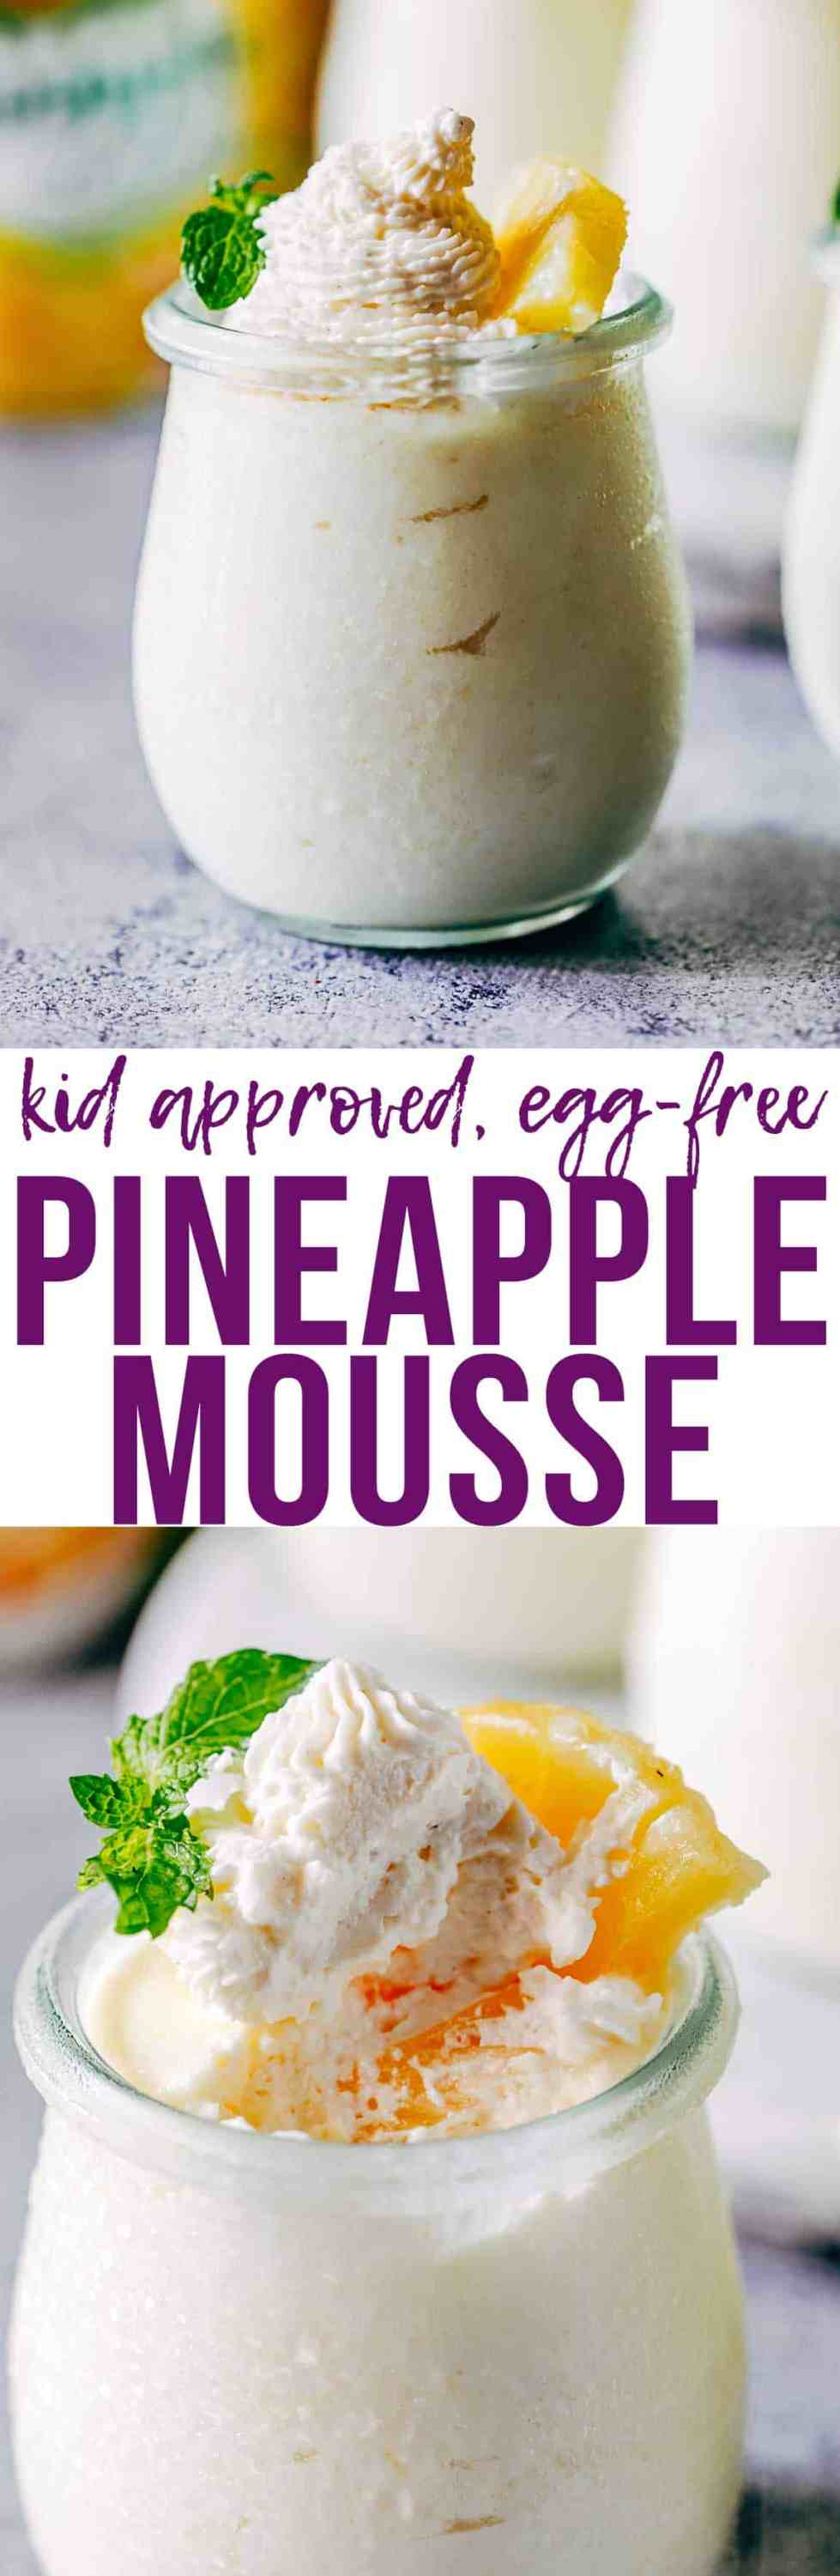 Easy eggless pineapple mousse is a five ingredient, make-ahead dessert that will be a crowd pleaser! Light & airy, this is kid-approved, egg-free, gluten free and vegetarian mousse is perfect for potlucks, barbecues, parties.